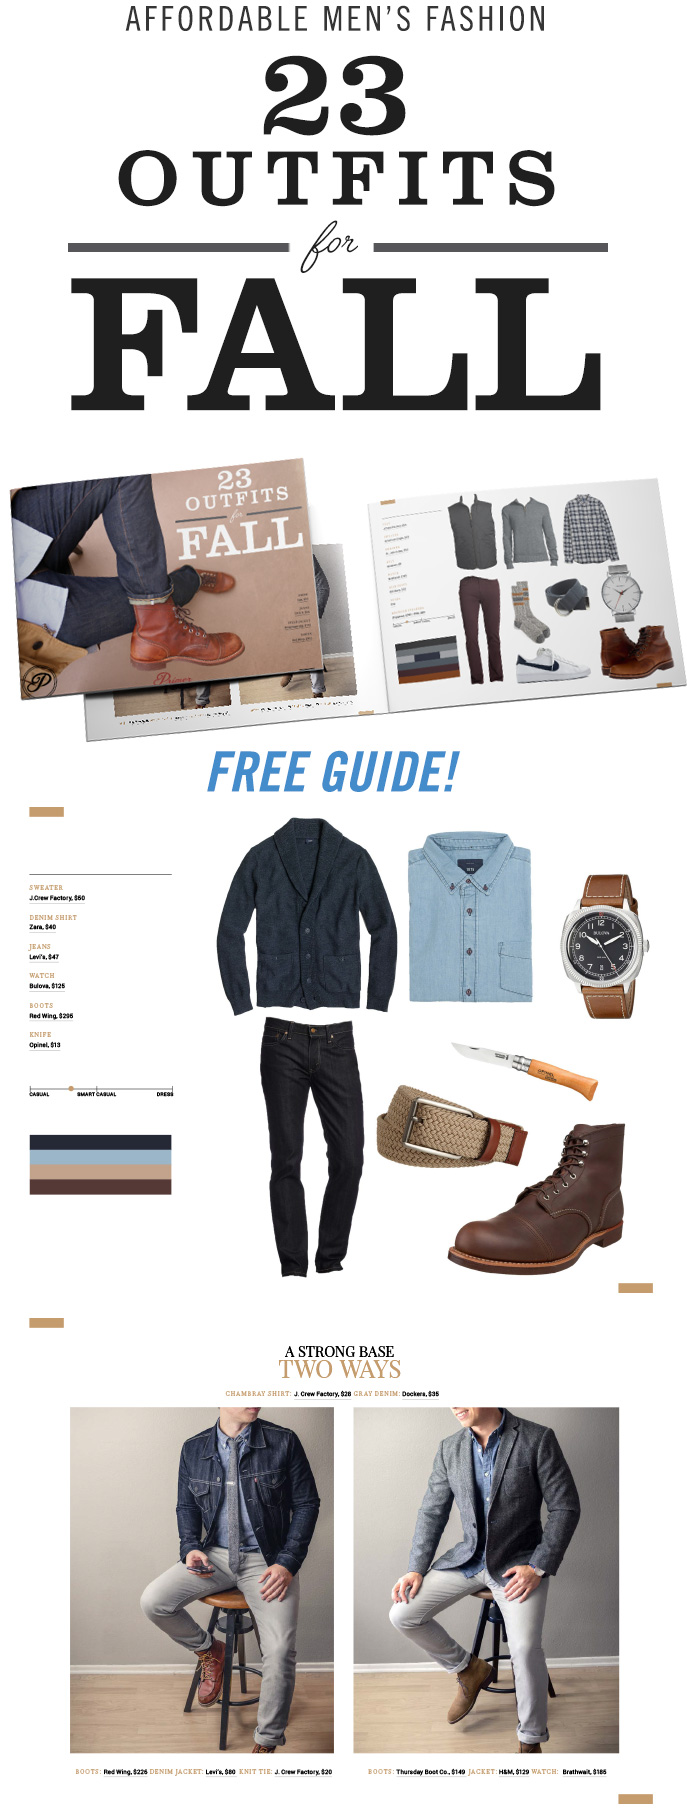 Men's Fall Fashion - 23 Outfits for Men - Men's Style Inpsiration